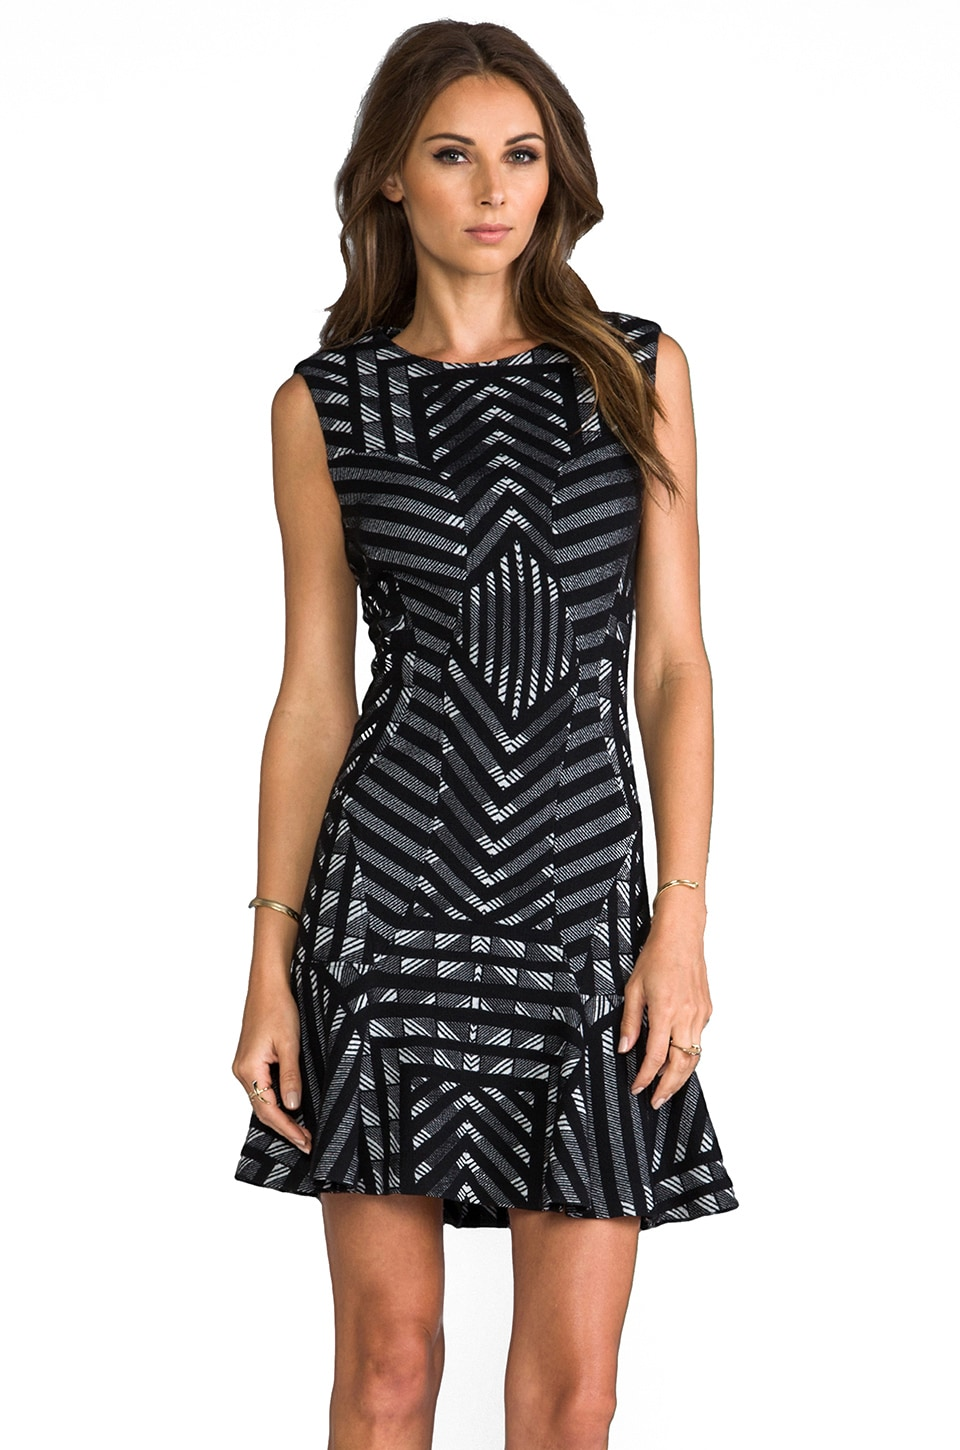 Diane von Furstenberg RUNWAY Carlie Dress in Black/White